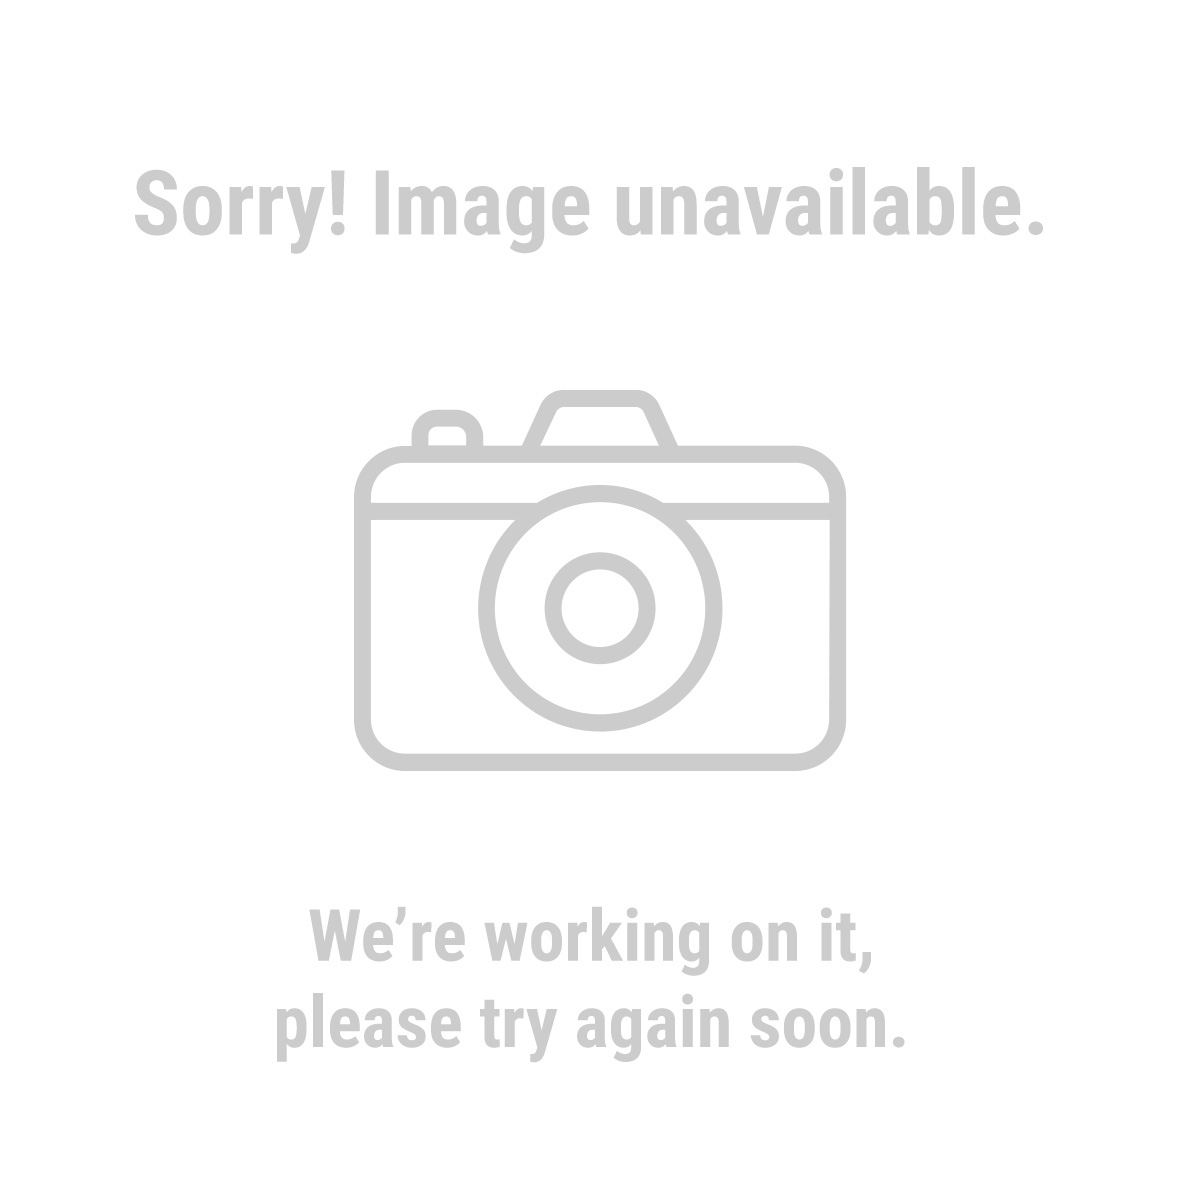 Central Pneumatic 61454 2.5 Horsepower, 21 gal., 125 PSI Cast Iron Vertical Air Compressor